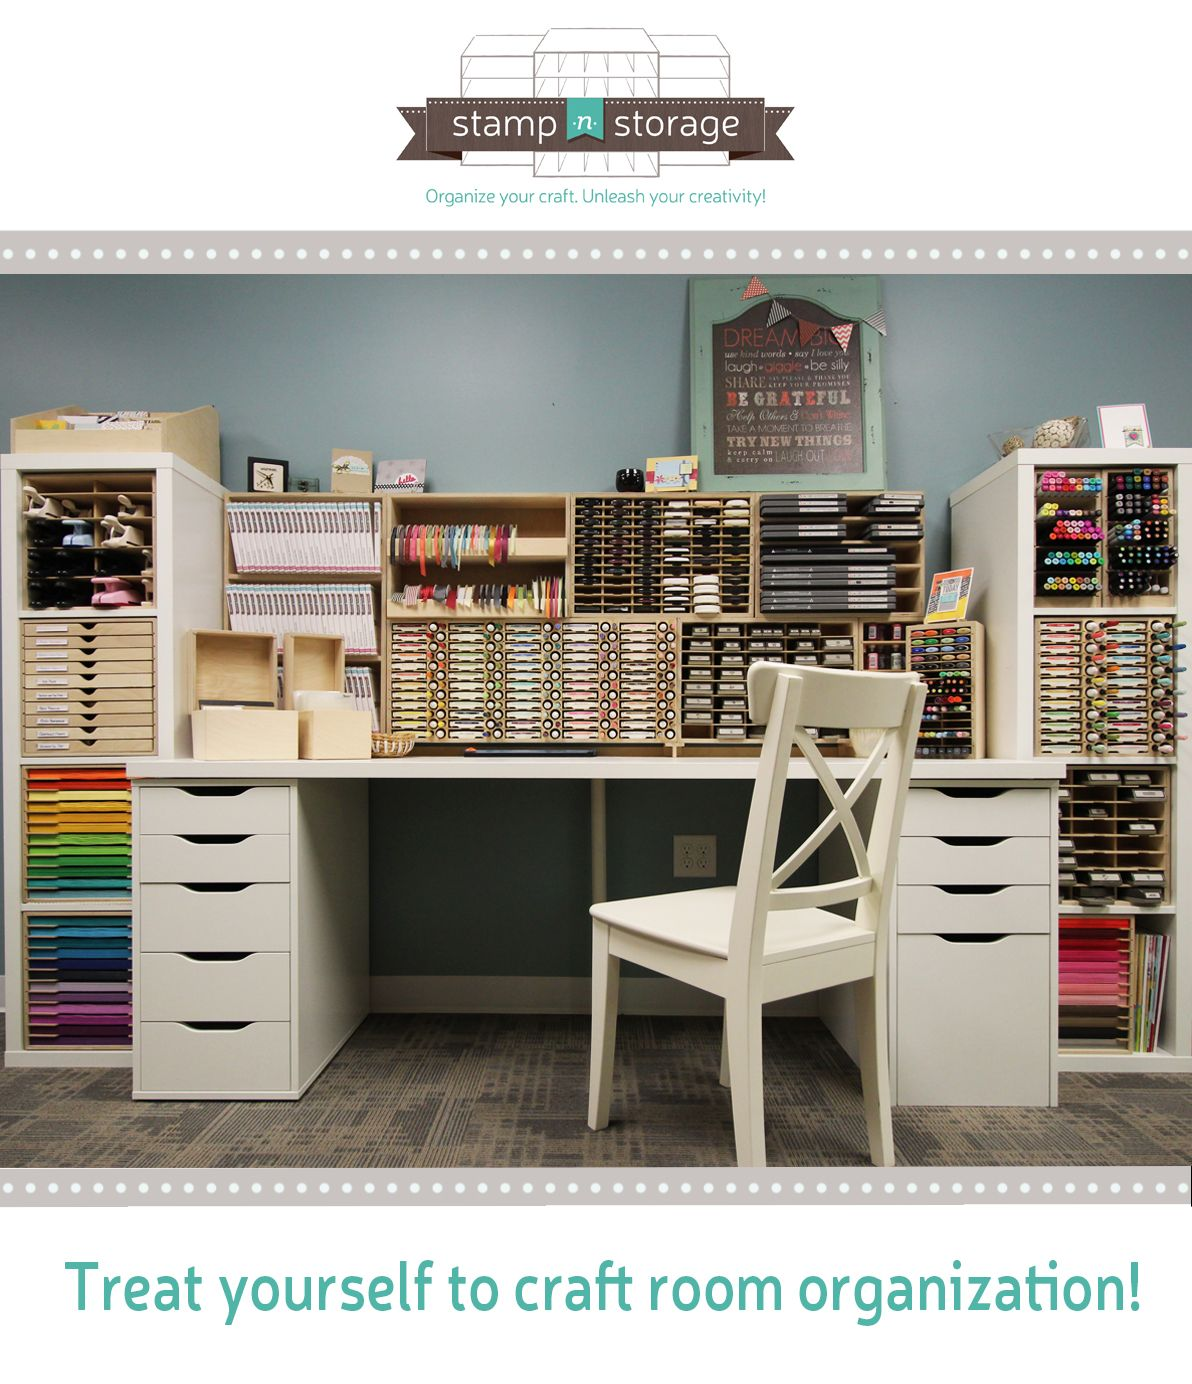 Treat yourself to craft room organization craft storage treat yourself to craft room organization solutioingenieria Choice Image